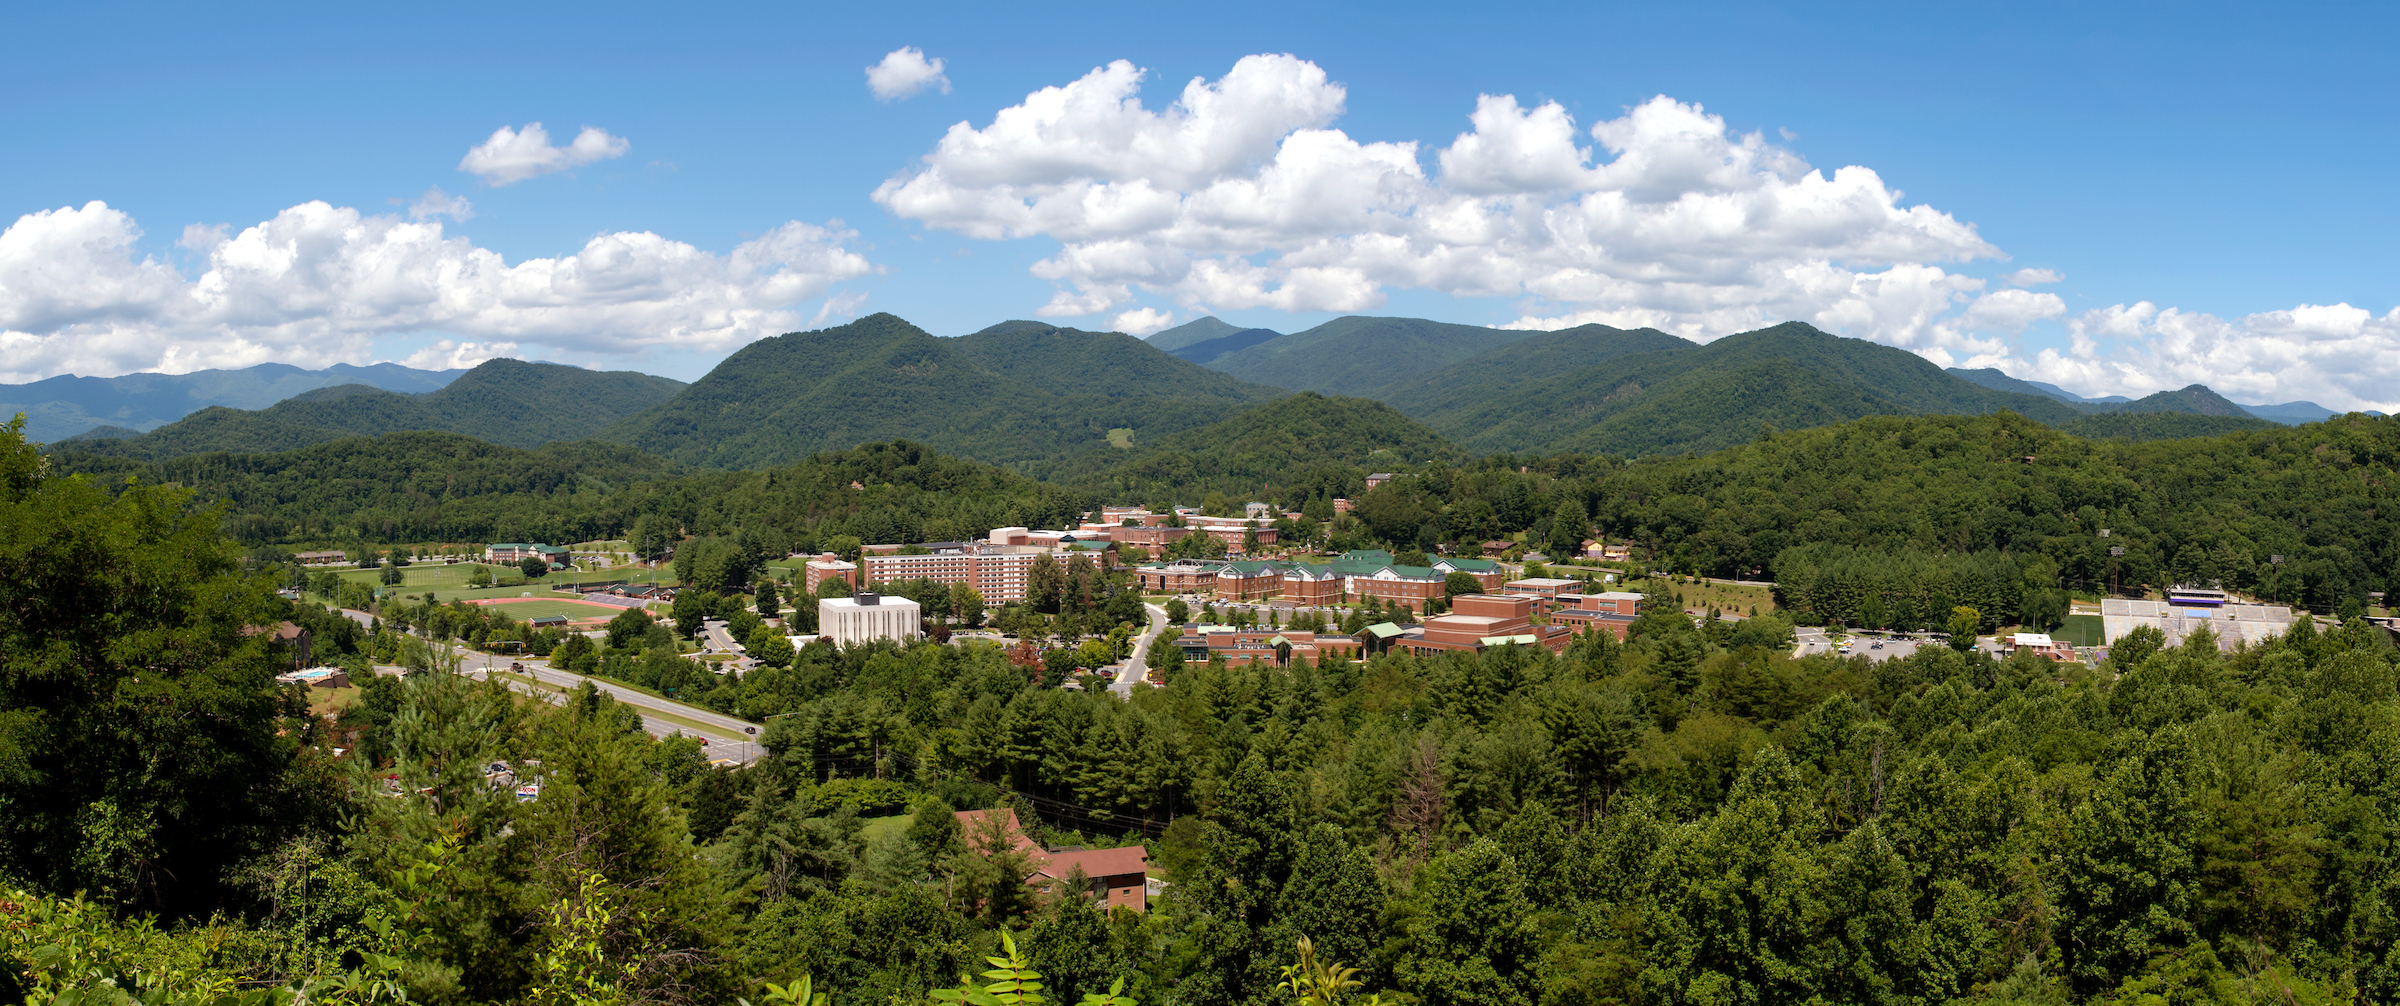 Aerial View of Western Carolina University's Cullowhee Campus